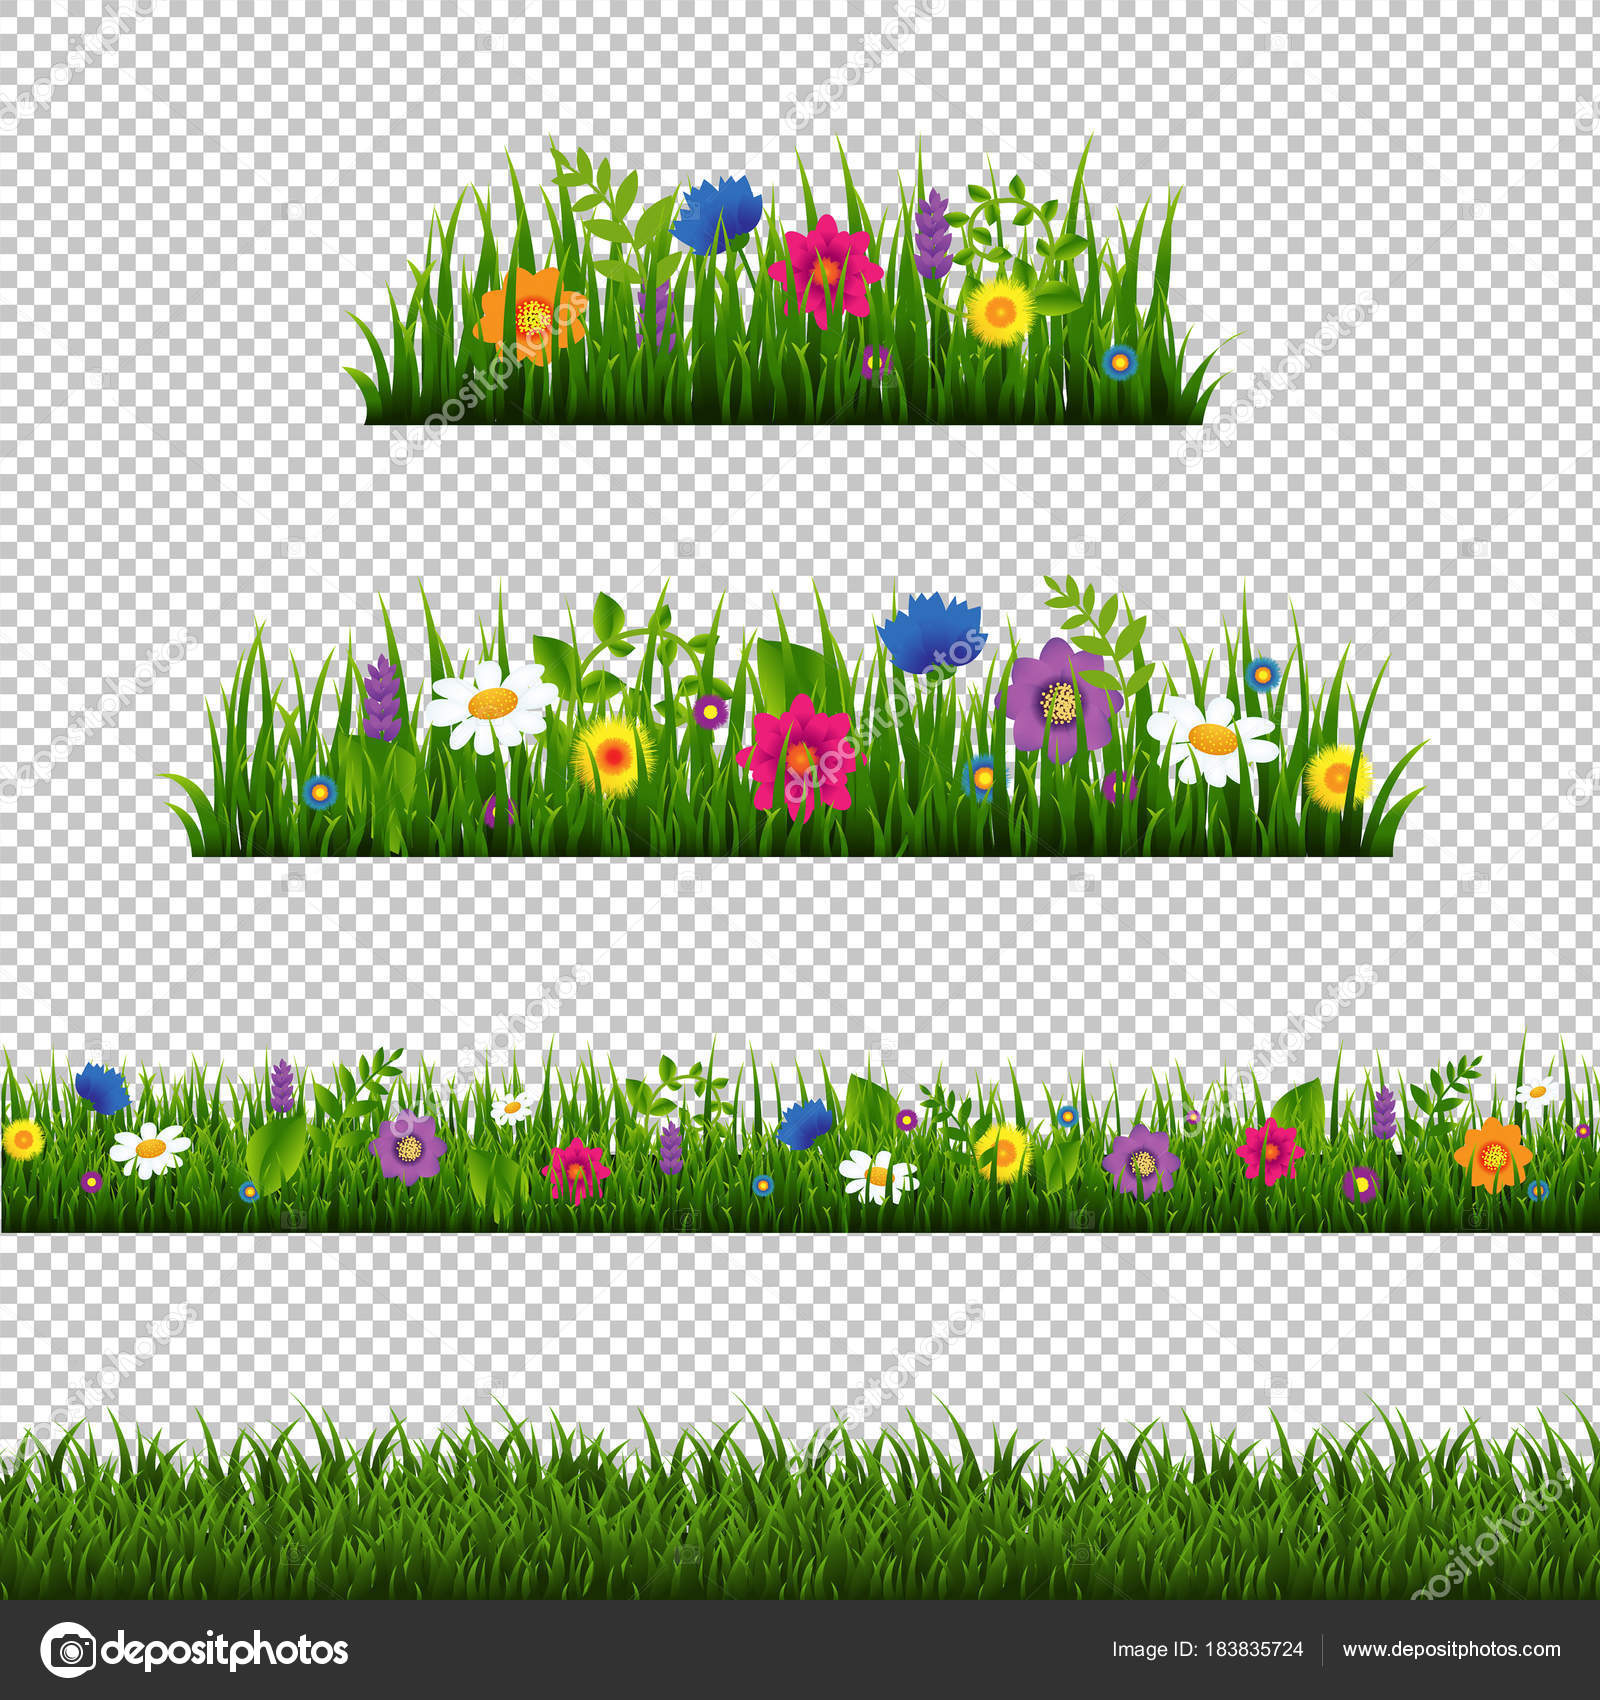 grass border no background illustration grass border flower collection isolated transparent background gradient mesh vector stock